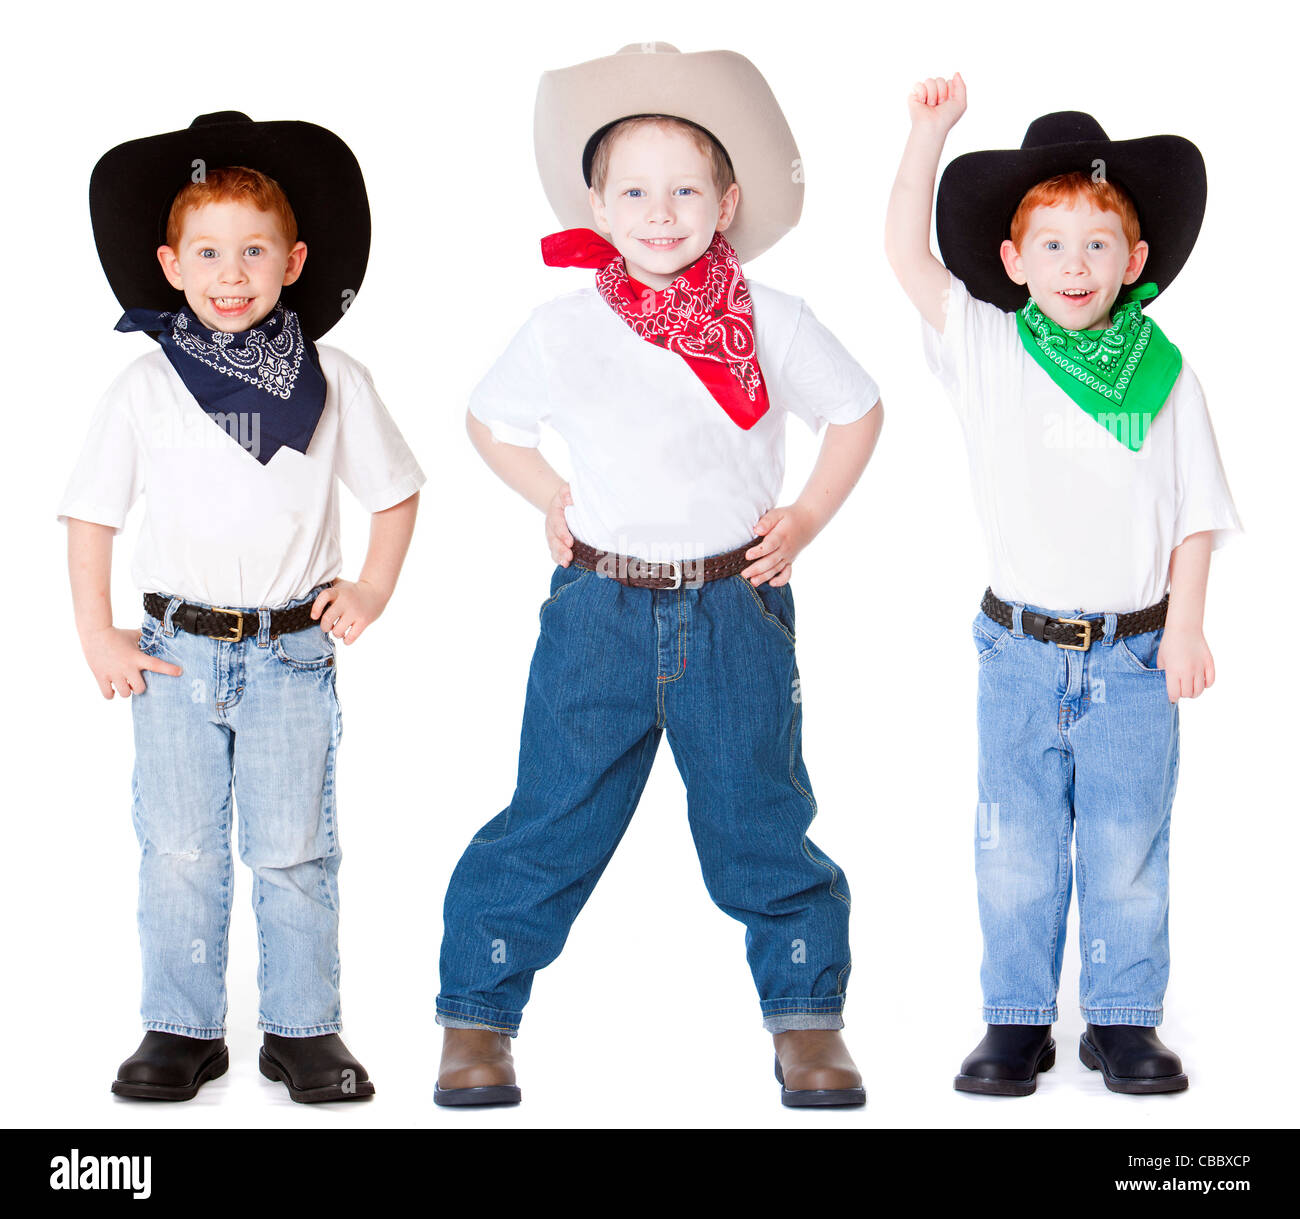 Three boys dressed up as cowboys in studio - Stock Image